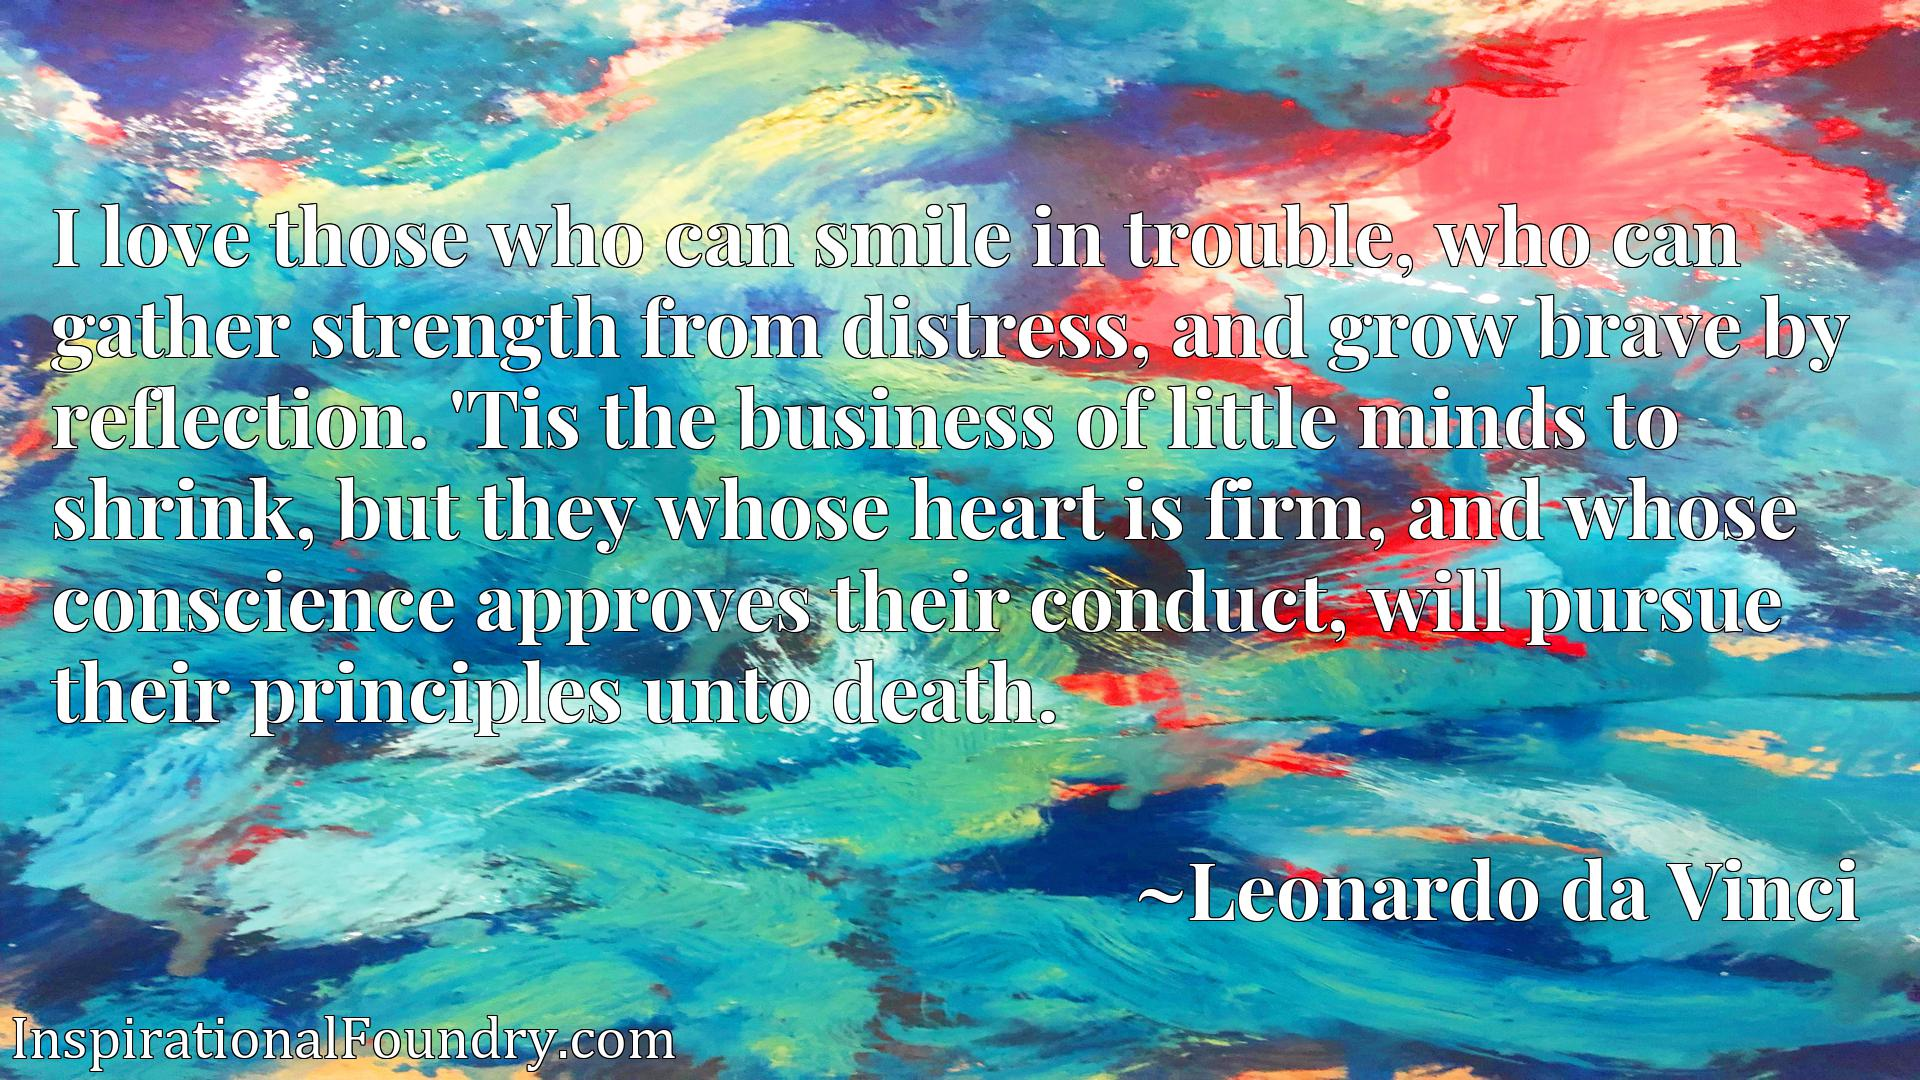 I love those who can smile in trouble, who can gather strength from distress, and grow brave by reflection. 'Tis the business of little minds to shrink, but they whose heart is firm, and whose conscience approves their conduct, will pursue their principles unto death.